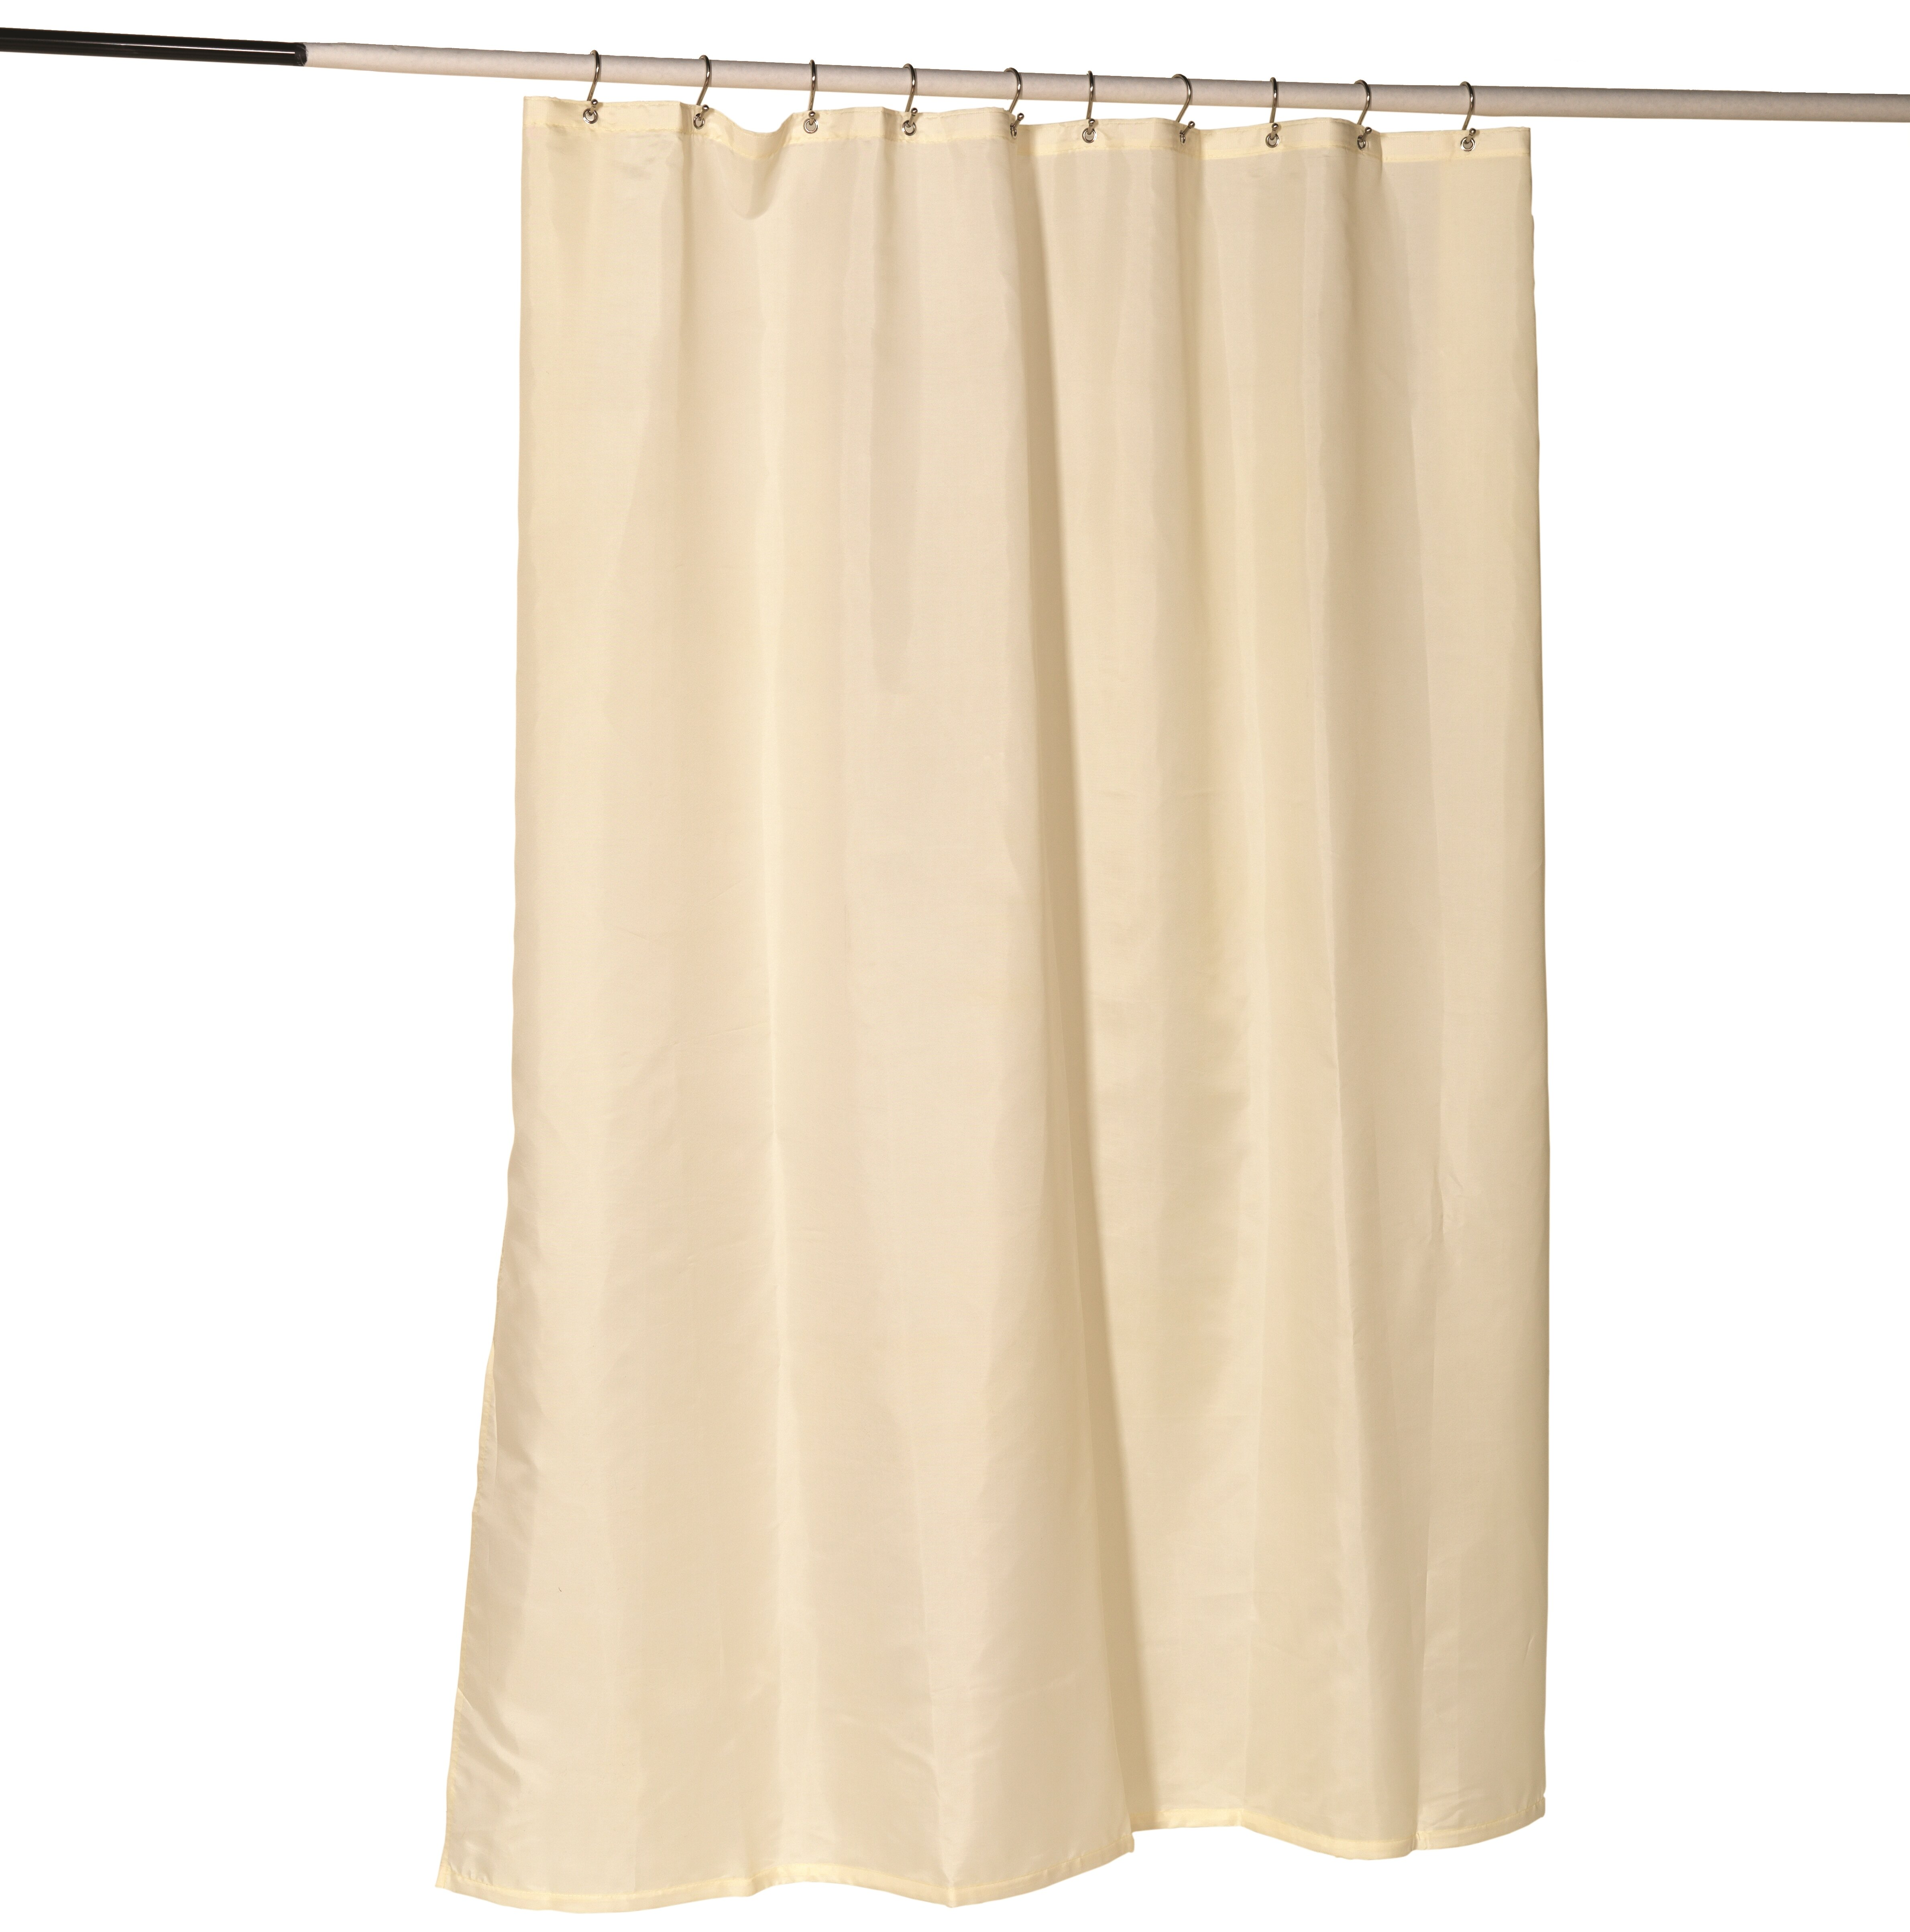 Ben And Jonah Nylon Fabric Shower Curtain Liner With Reinforced Header Metal Grommets Reviews